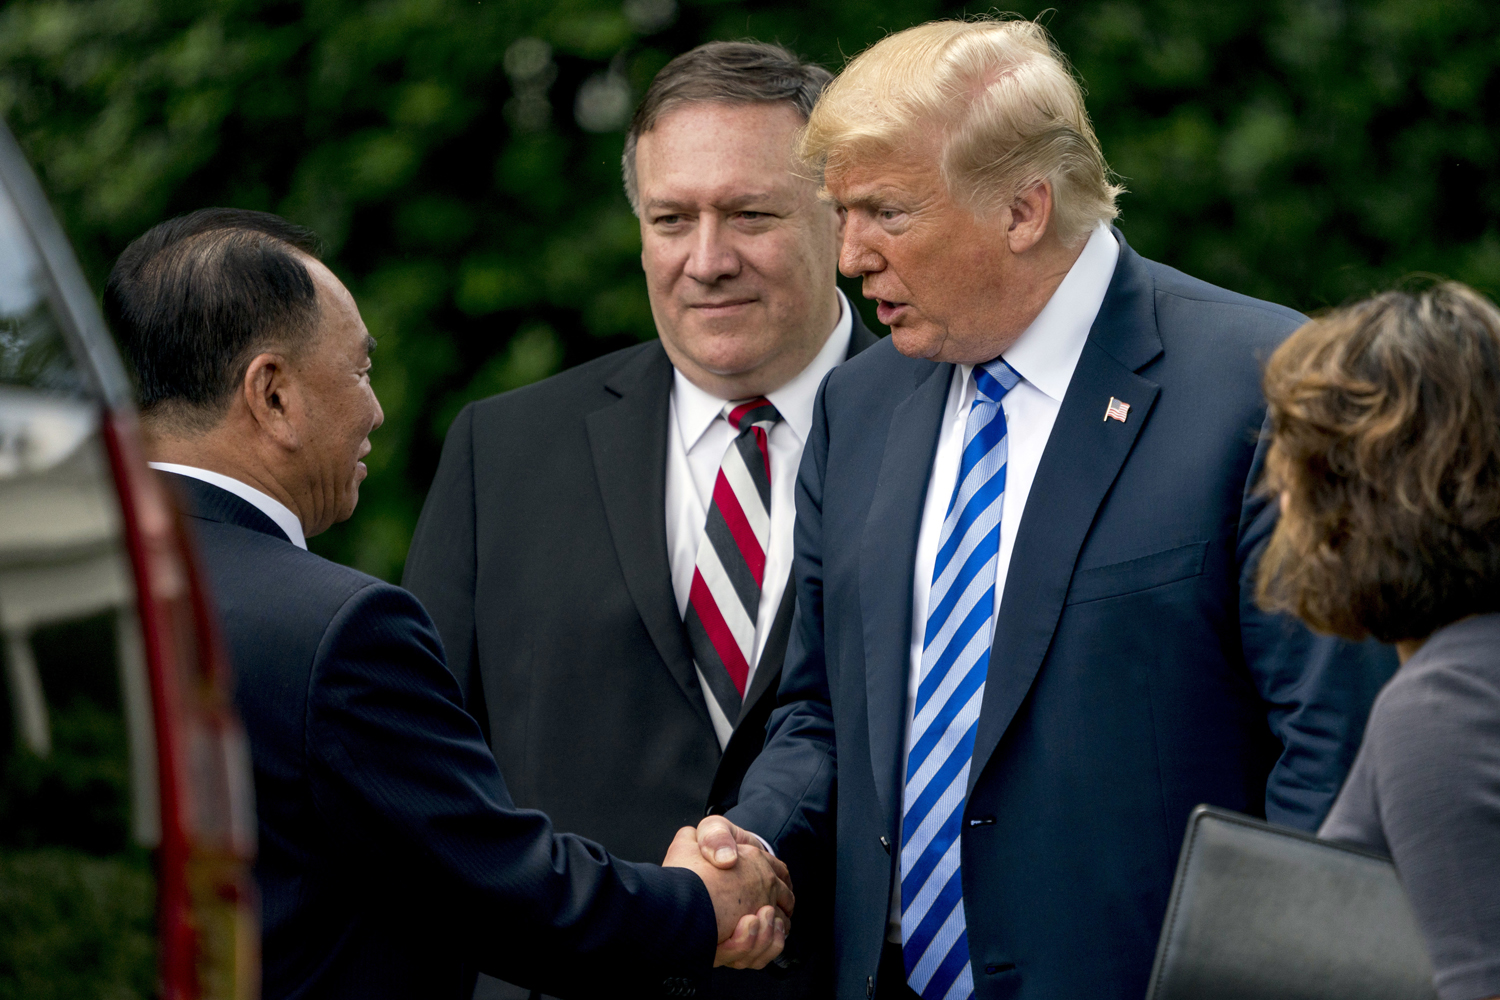 President Donald Trump shakes hands with Kim Yong Chol, former North Korean military intelligence chief and one of leader Kim Jong Un's closest aides, as Secretary of State Mike Pompeo watches upon departure after their meeting in the Oval Office of the White House in Washington, Friday, June 1, 2018. (Andrew Harnik/AP)